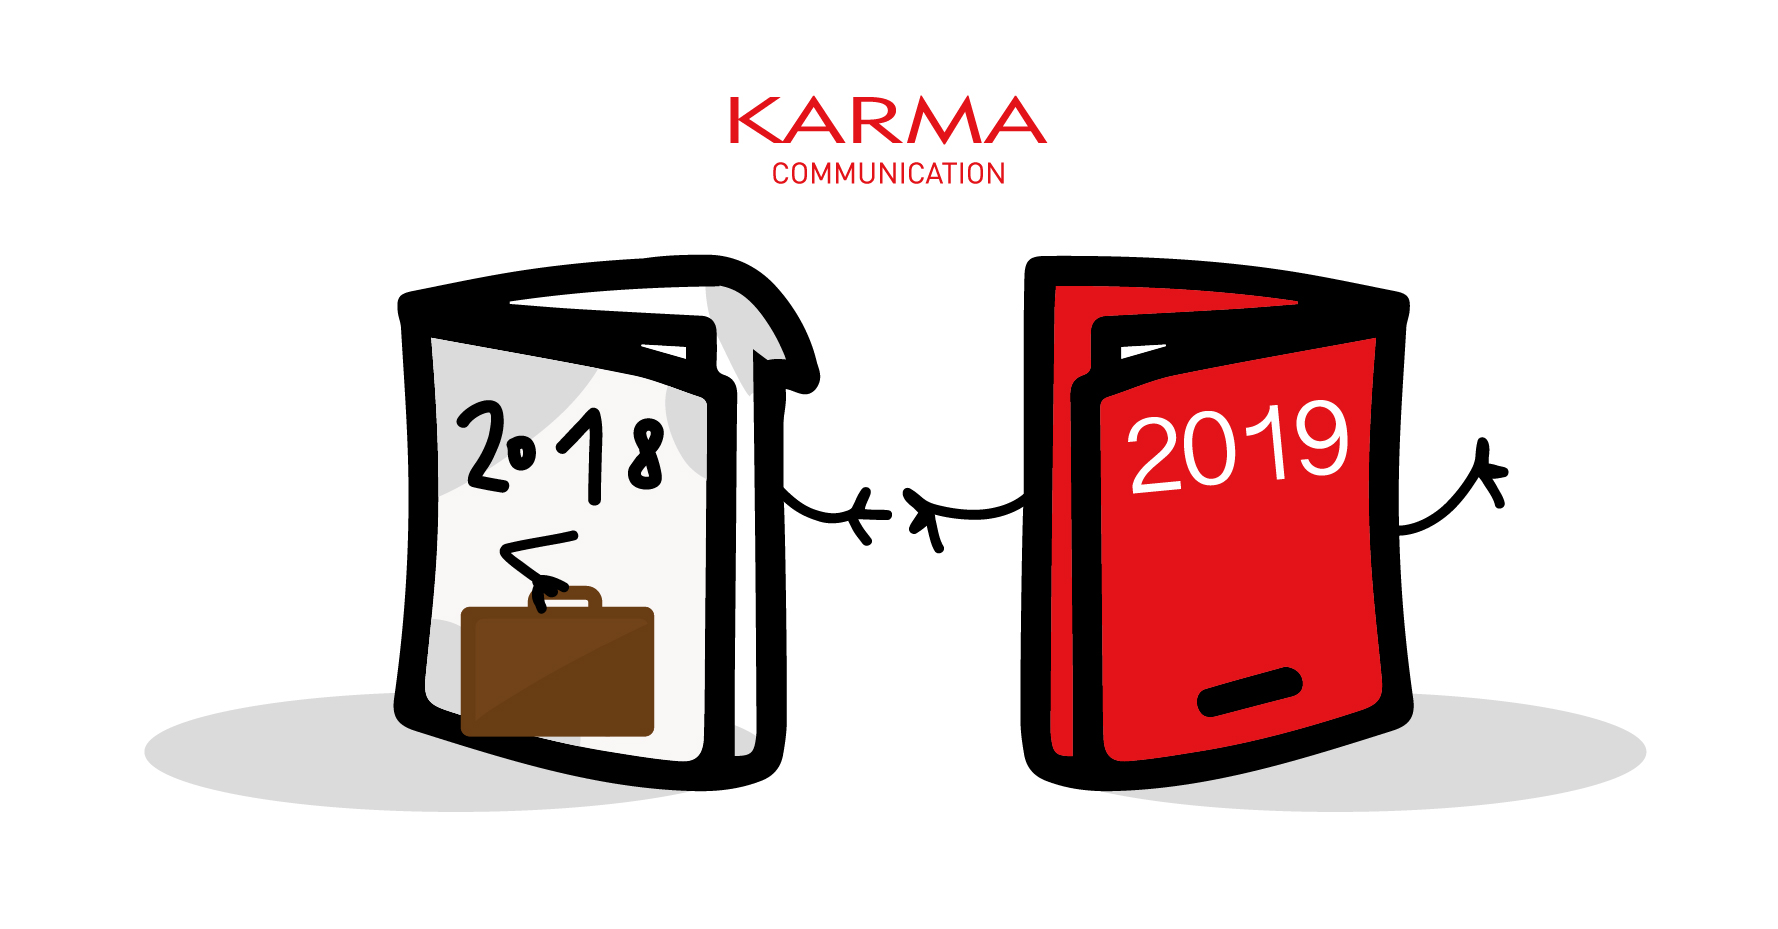 Karma Communication - Agenda 2019